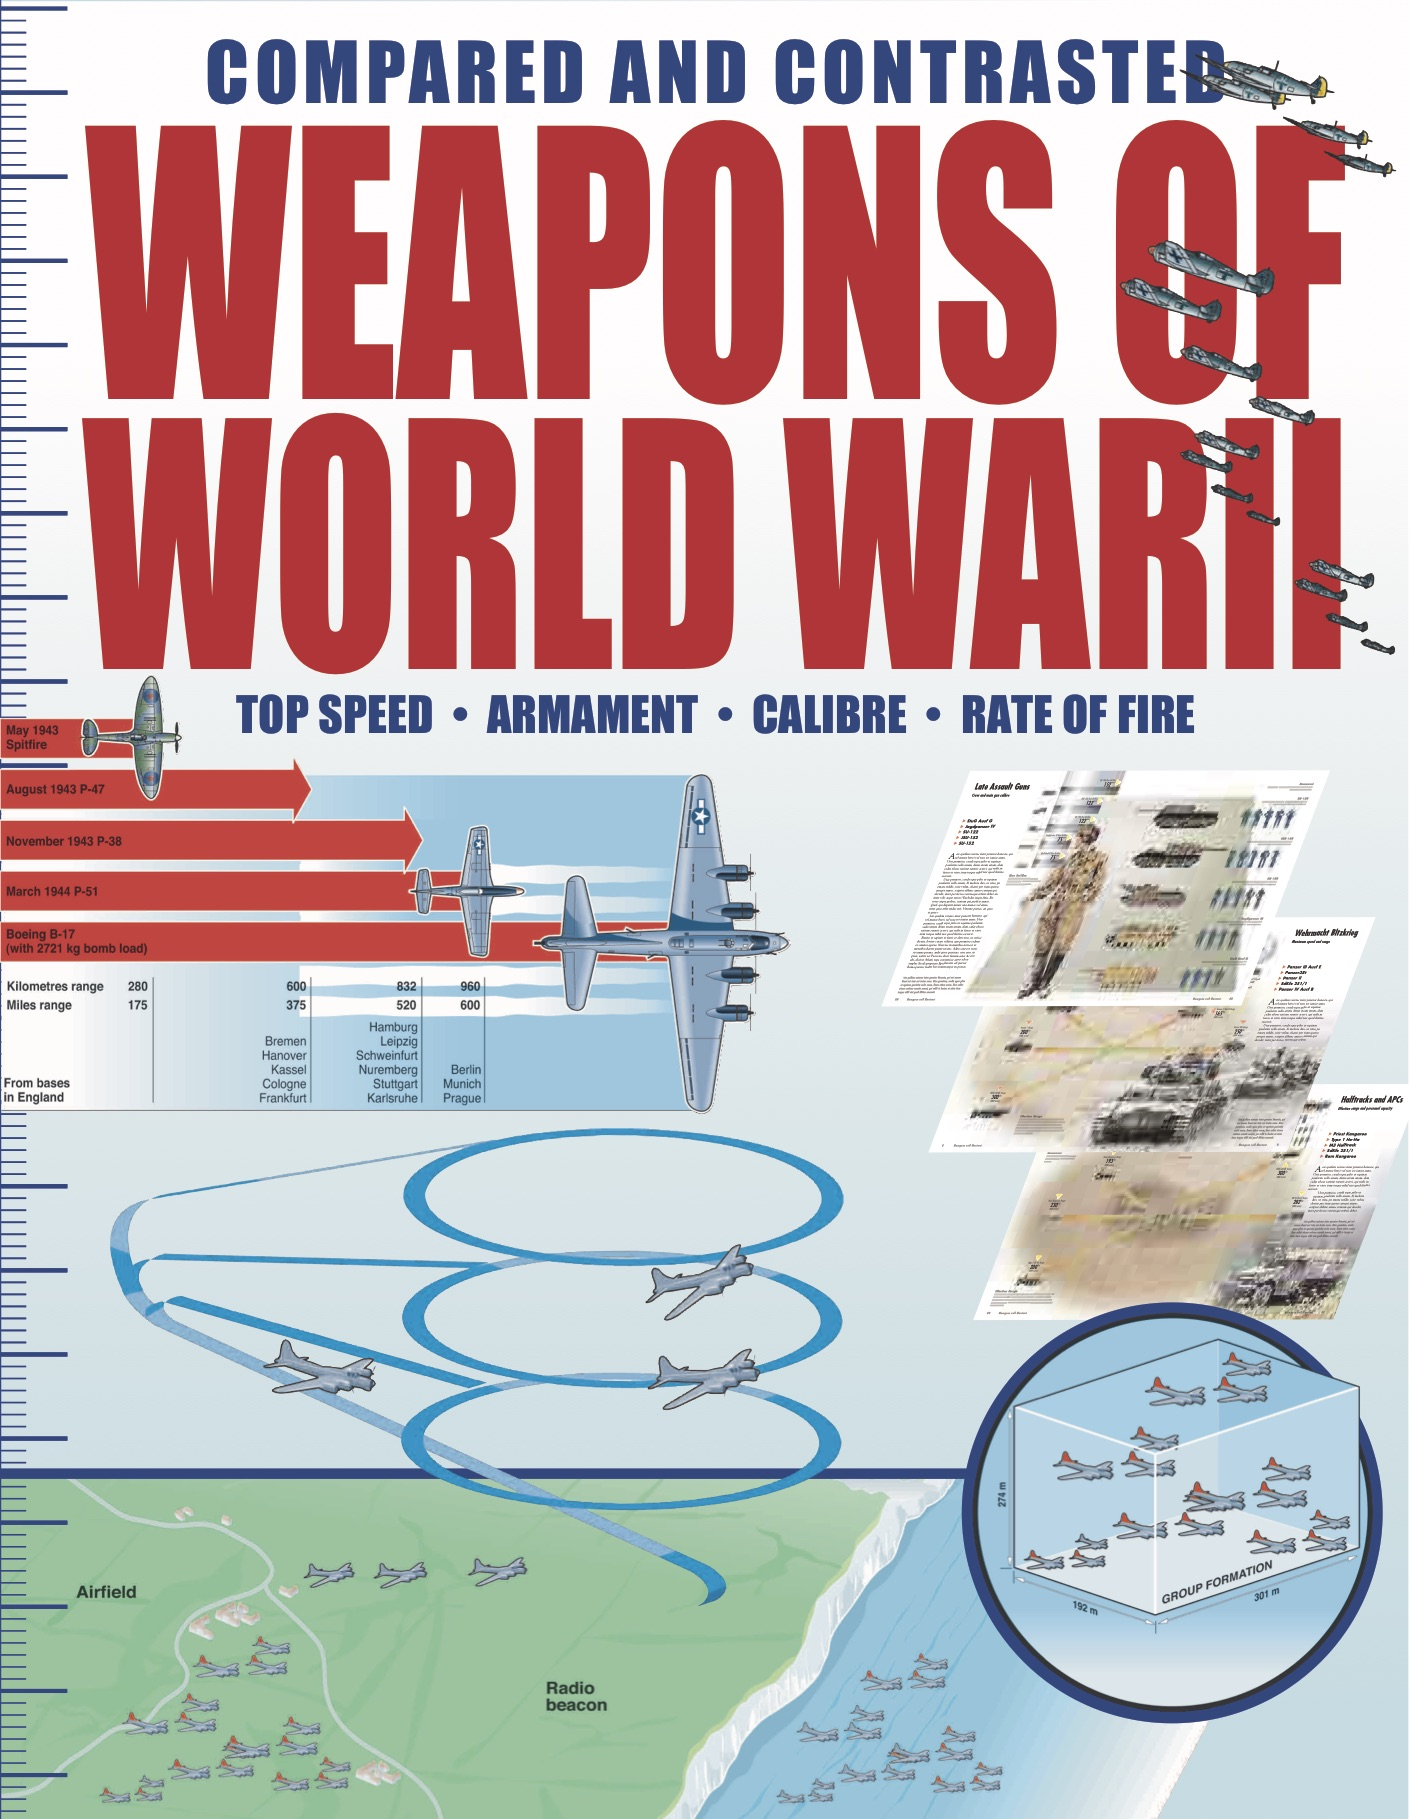 Compared and Contrasted Weapons of World War II